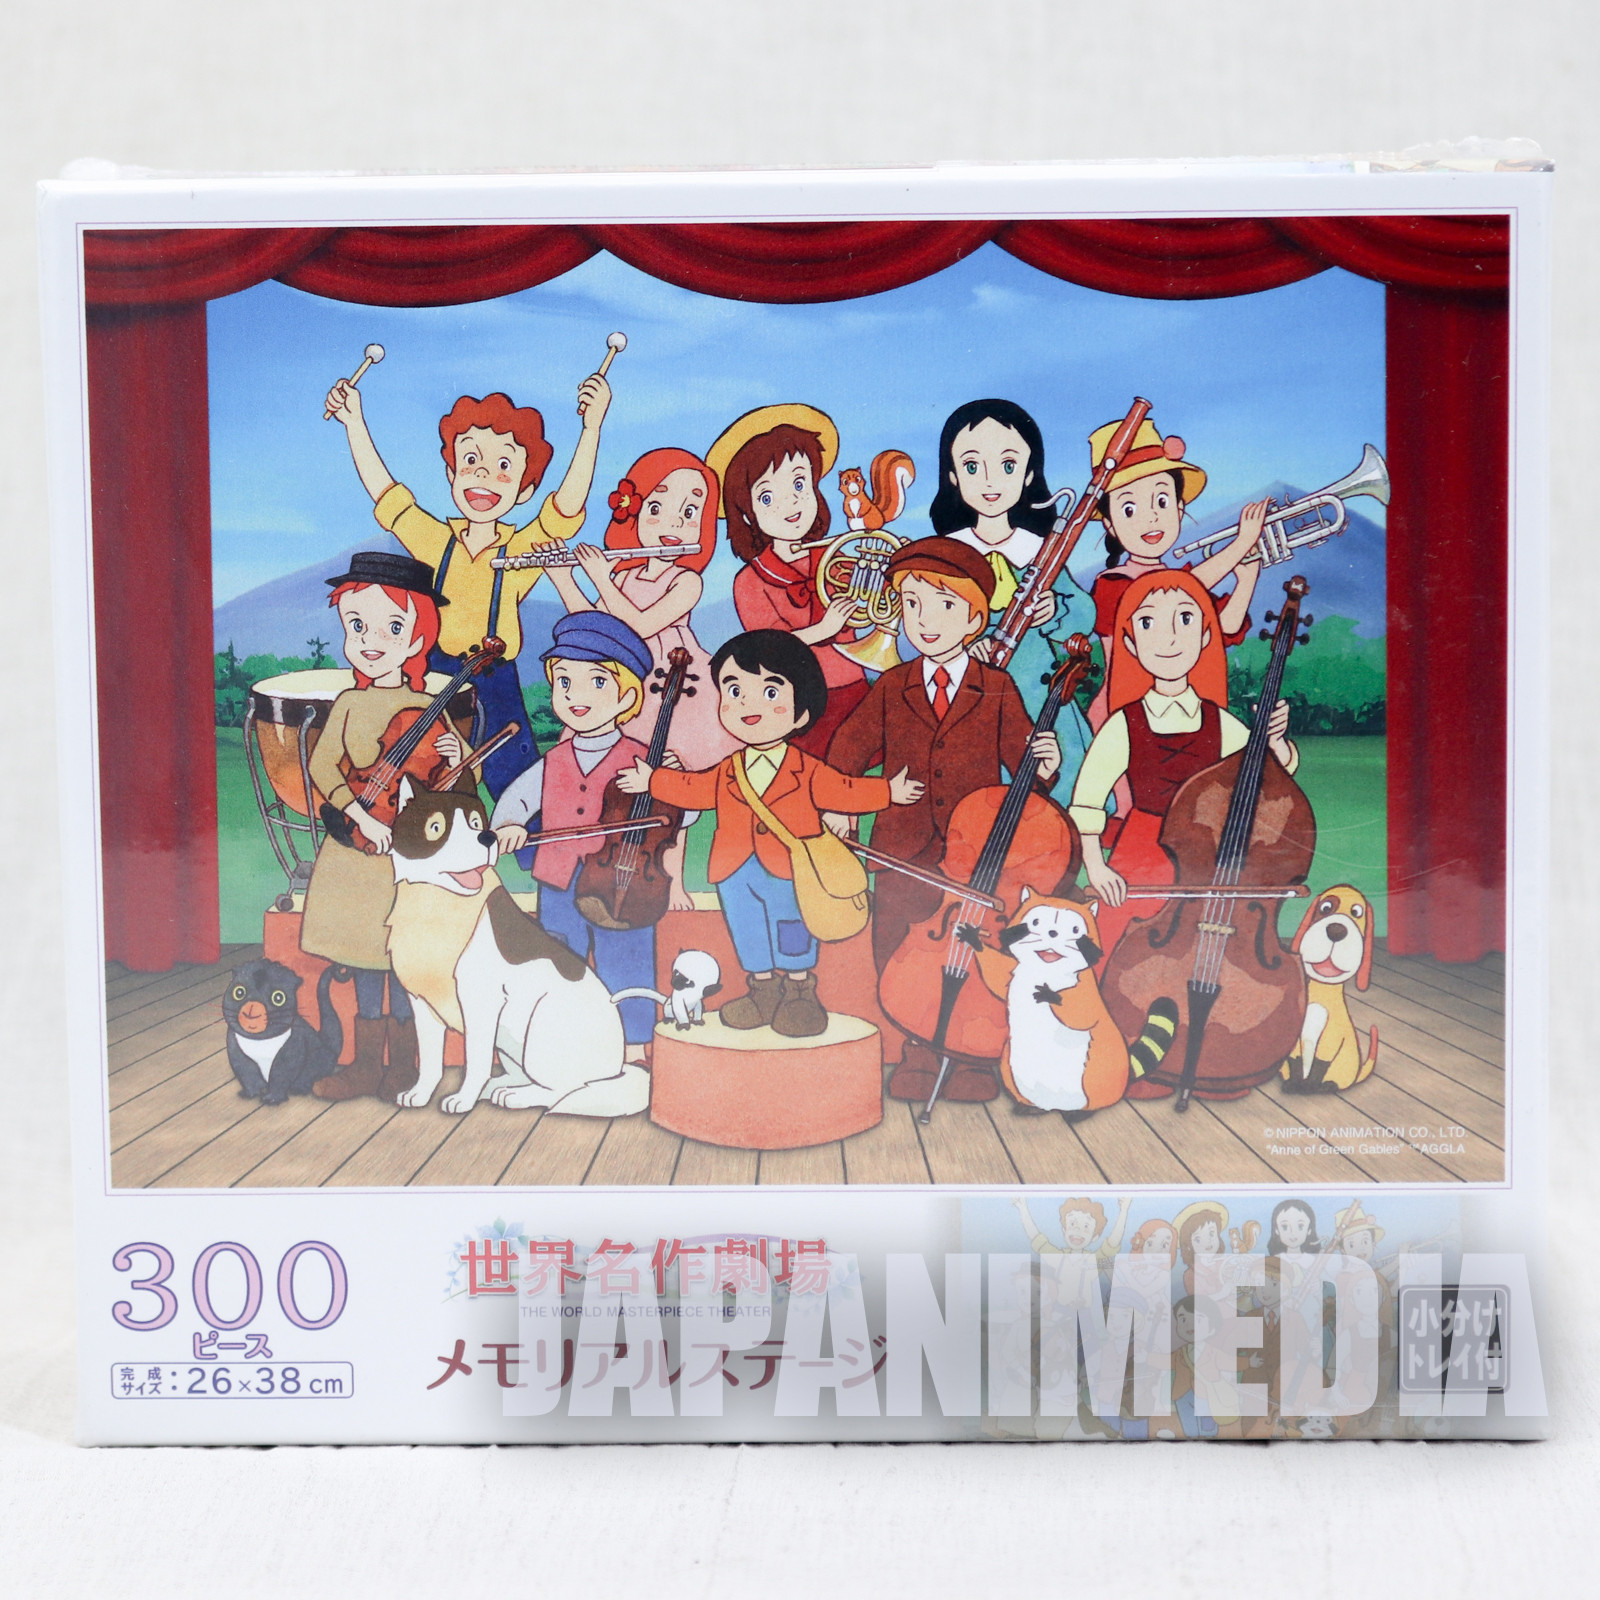 World Masterpiece Theater Memorial Stage Jigsaw Puzzle 300 Pieces 26x38cm JAPAN